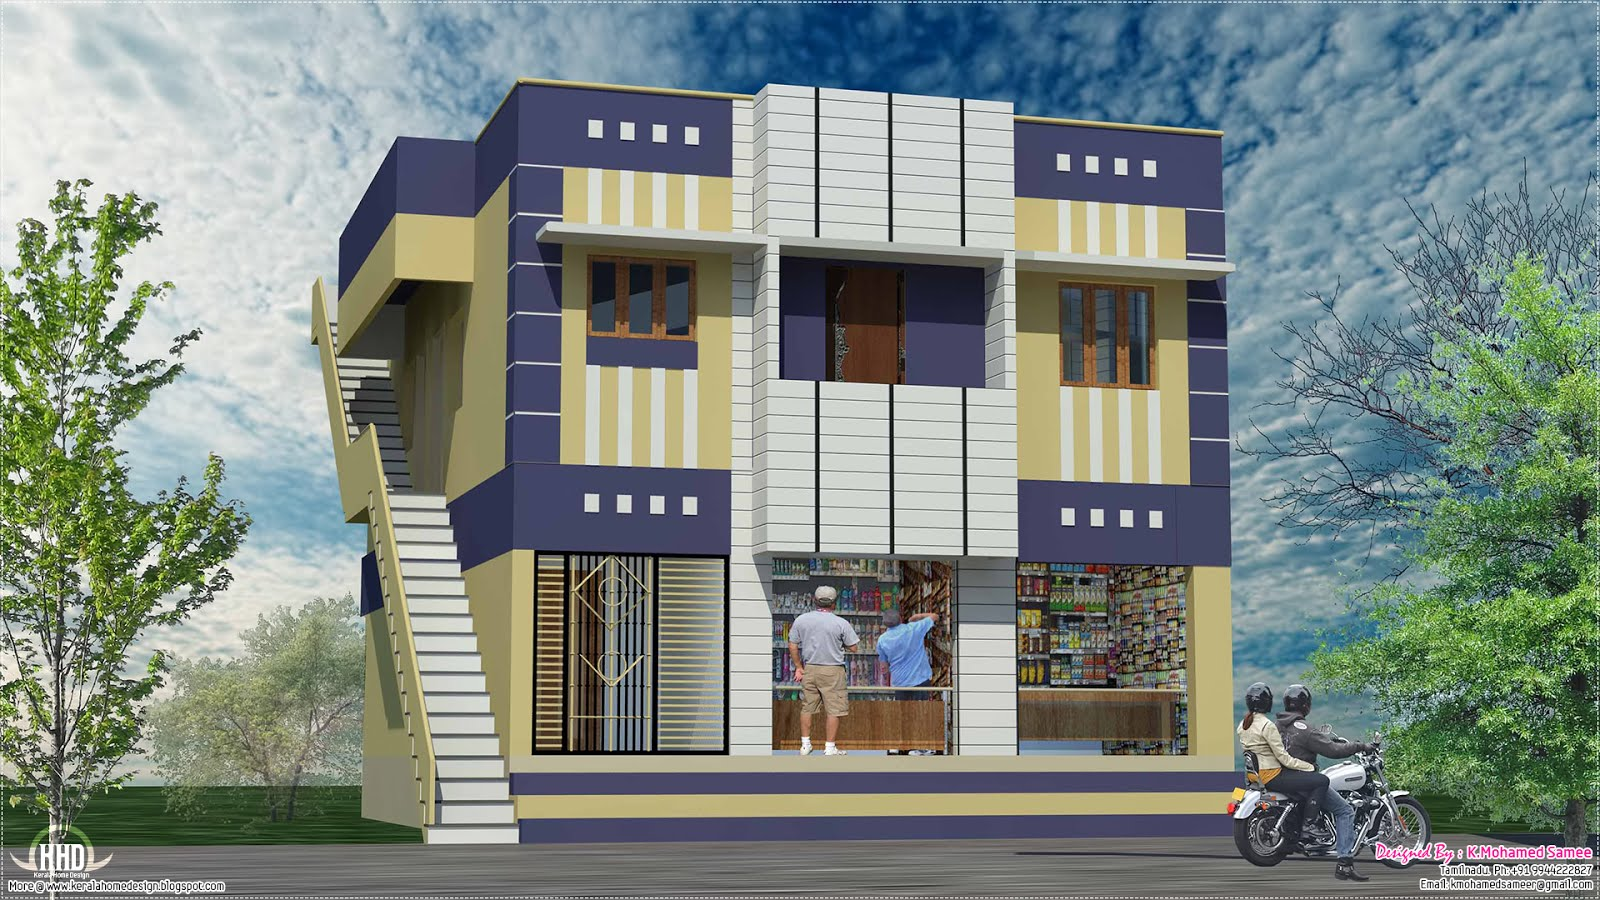 House design first floor - Home With Shop Design